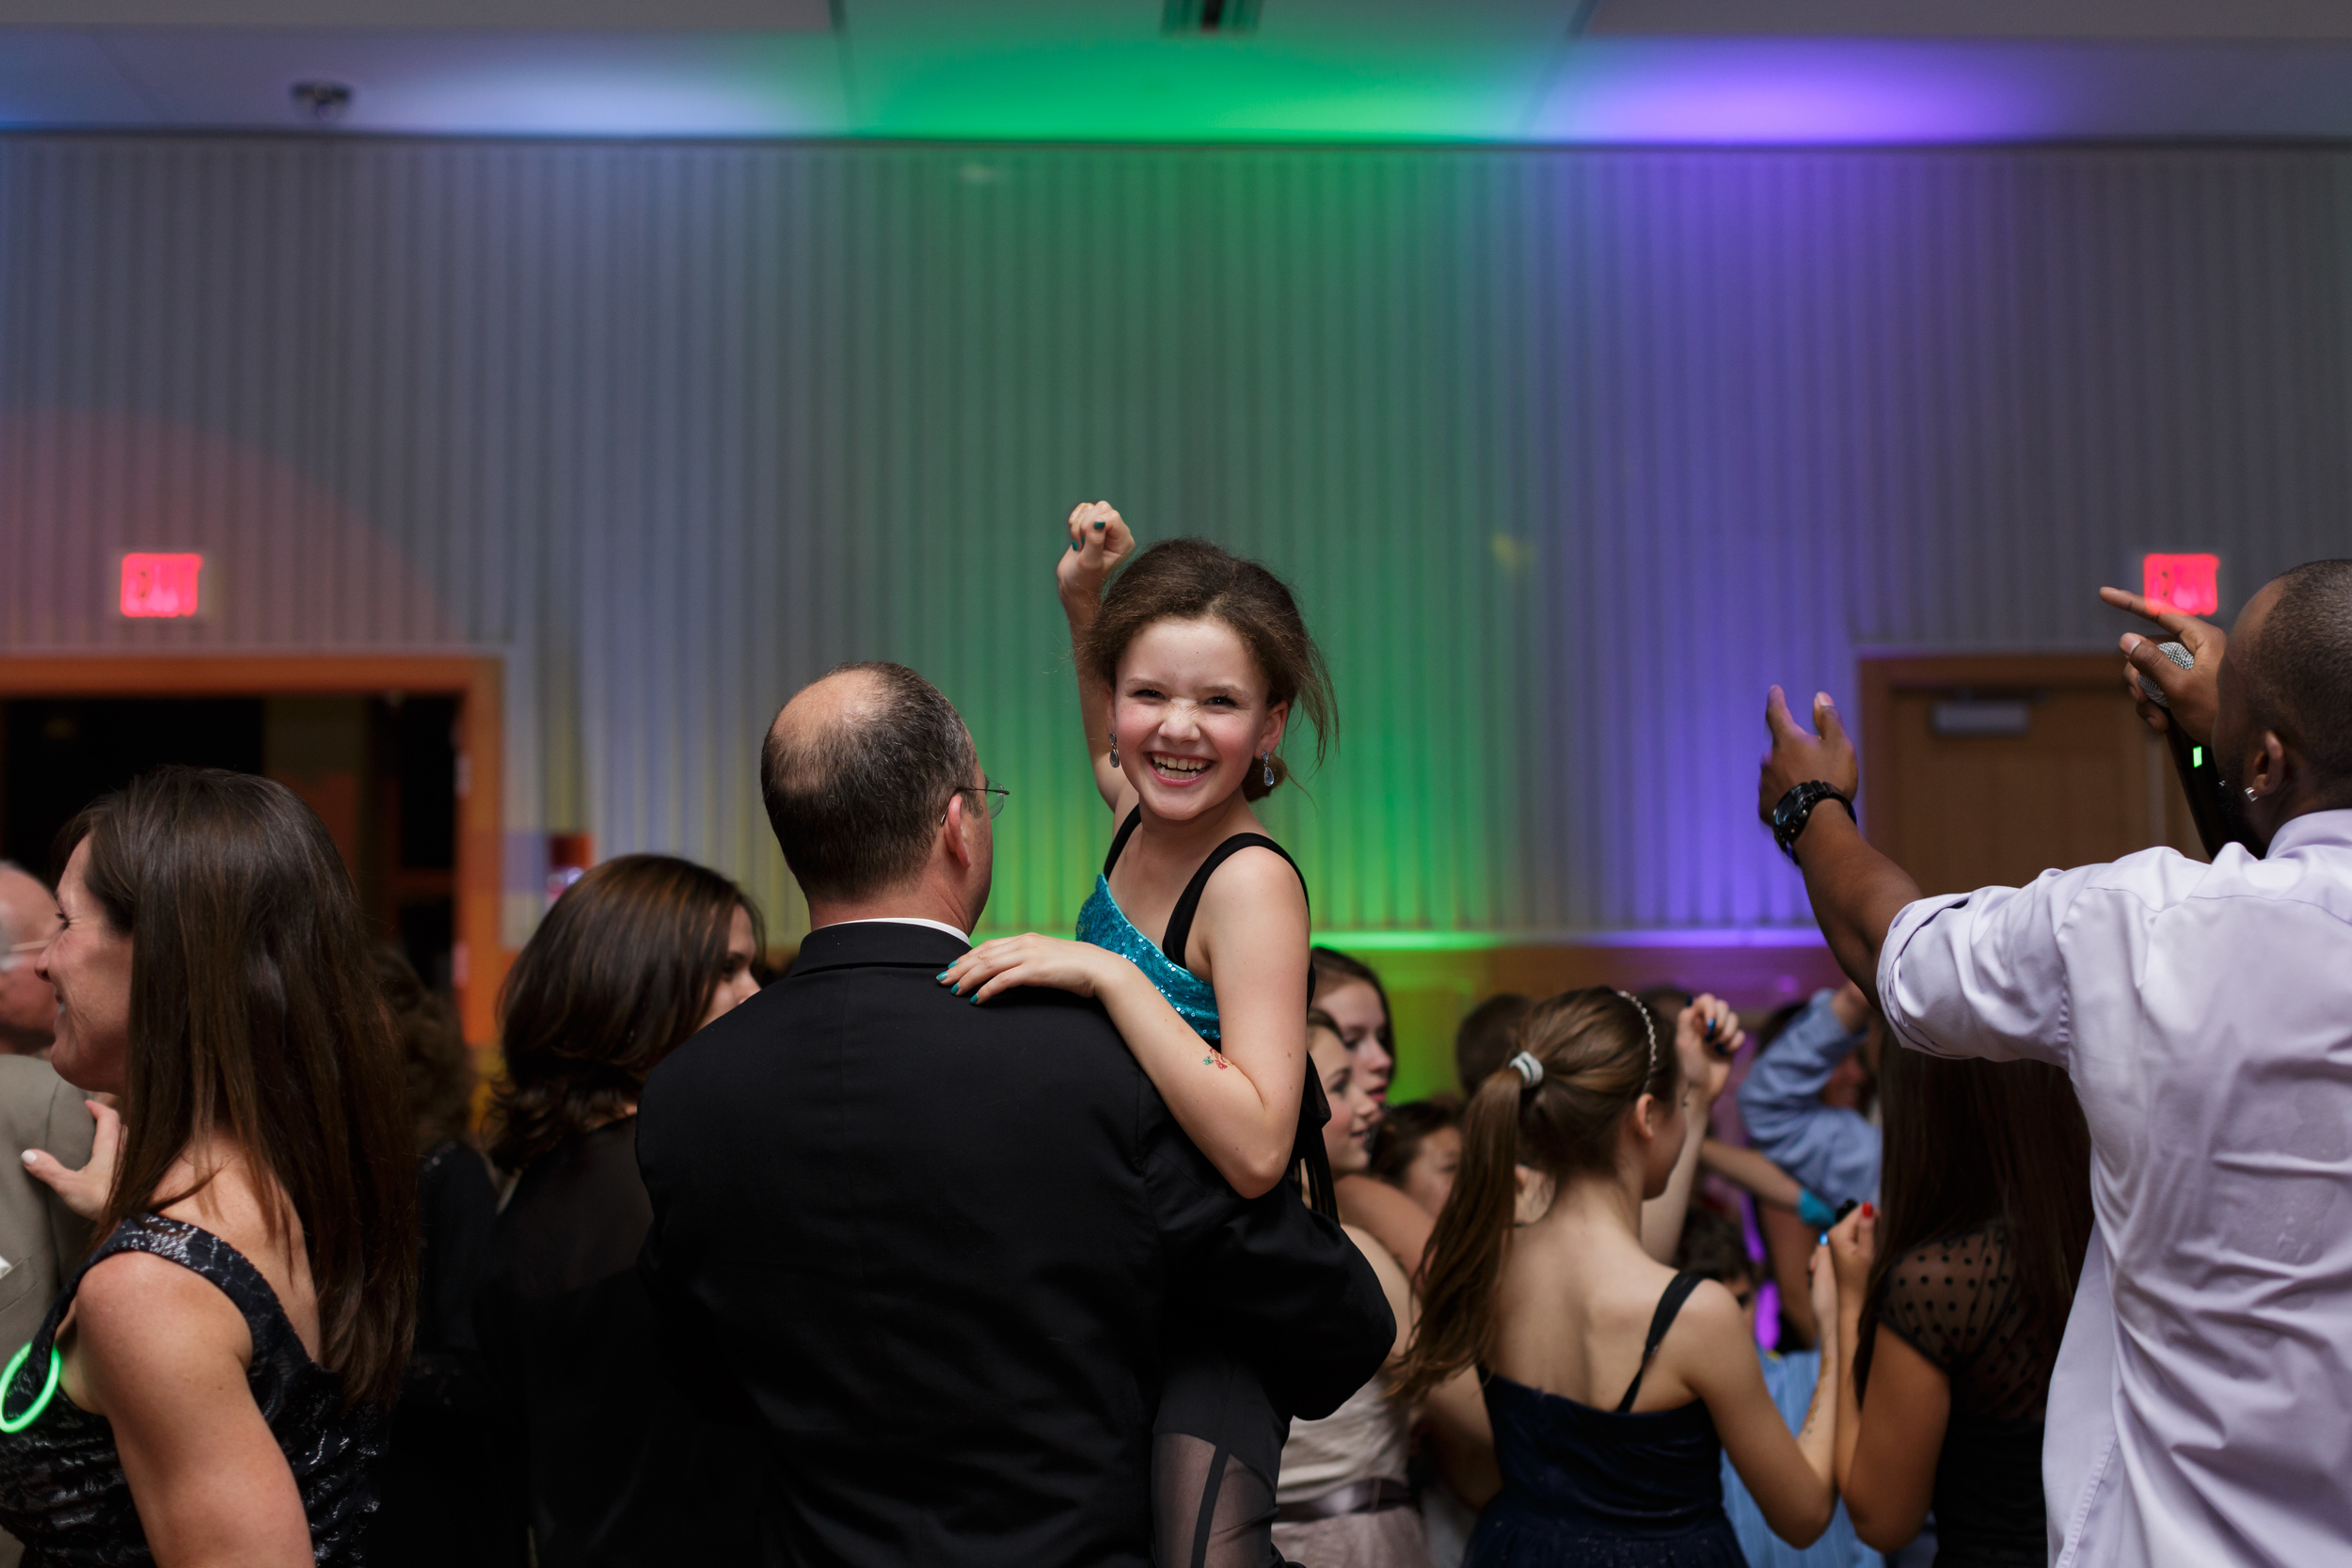 Lily_Ann_Arbor_Bat_Mitzvah_photography_28